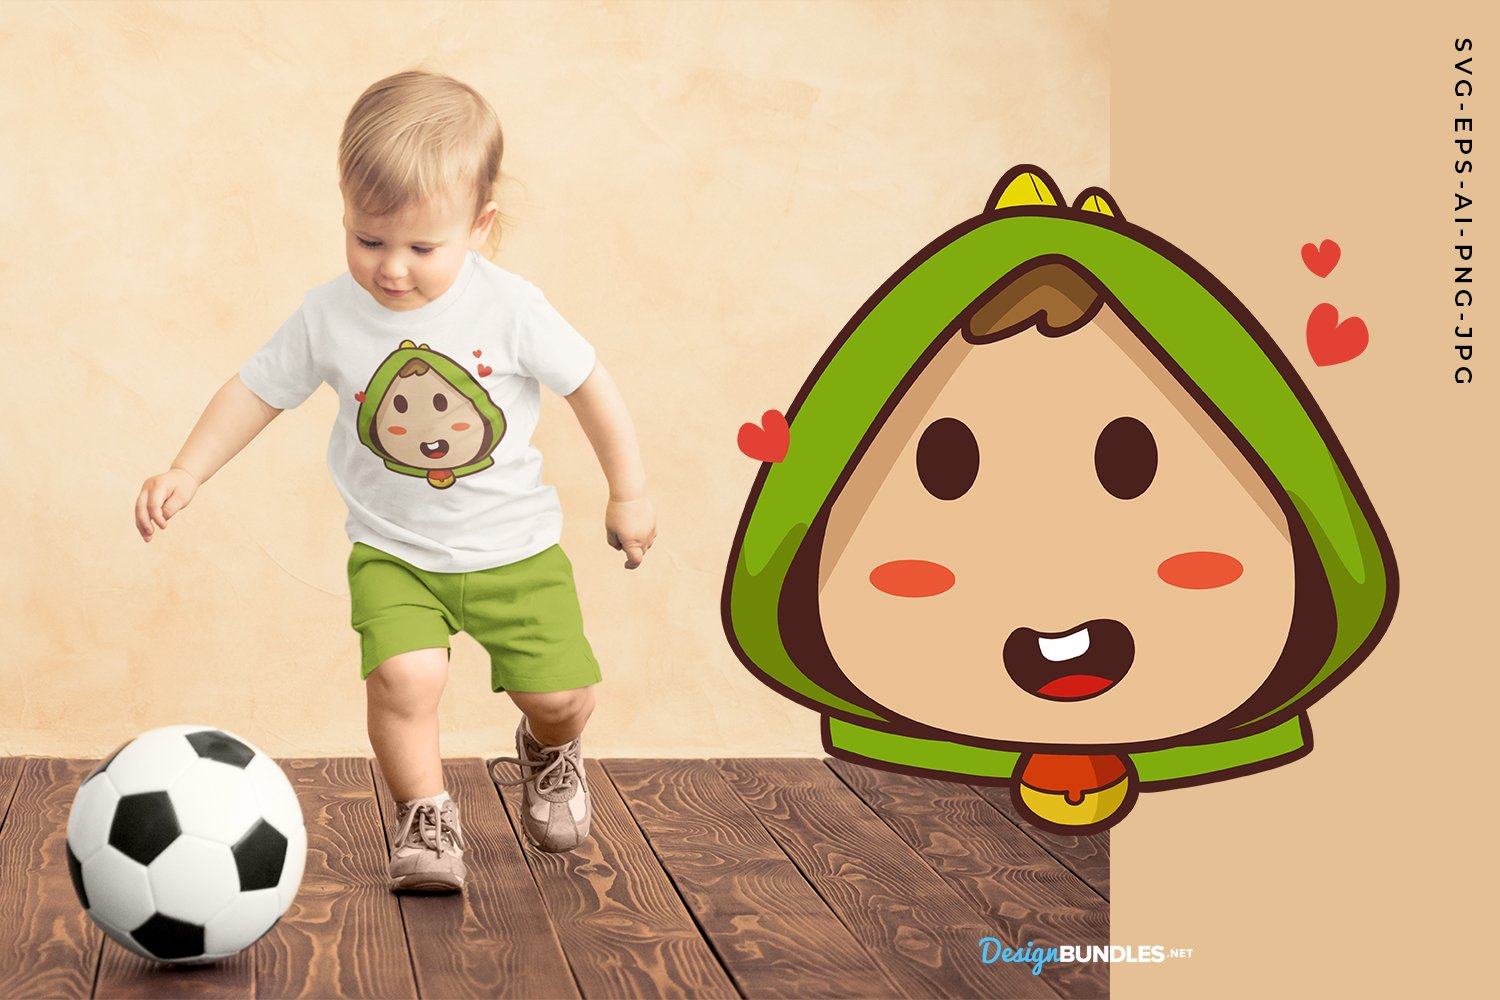 Baby With Love illustration example image 1